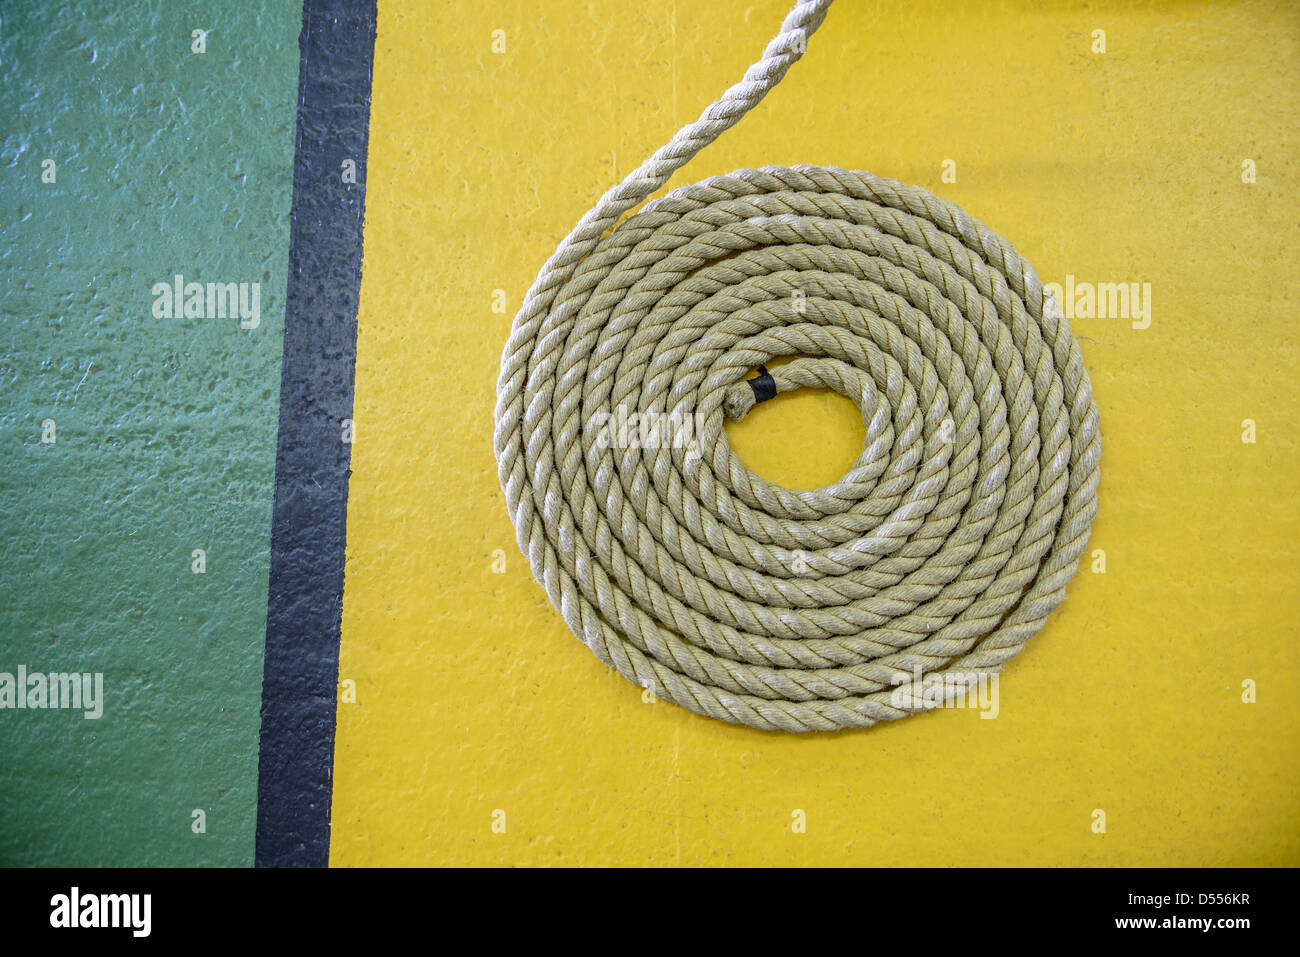 Close up of coiled rope - Stock Image